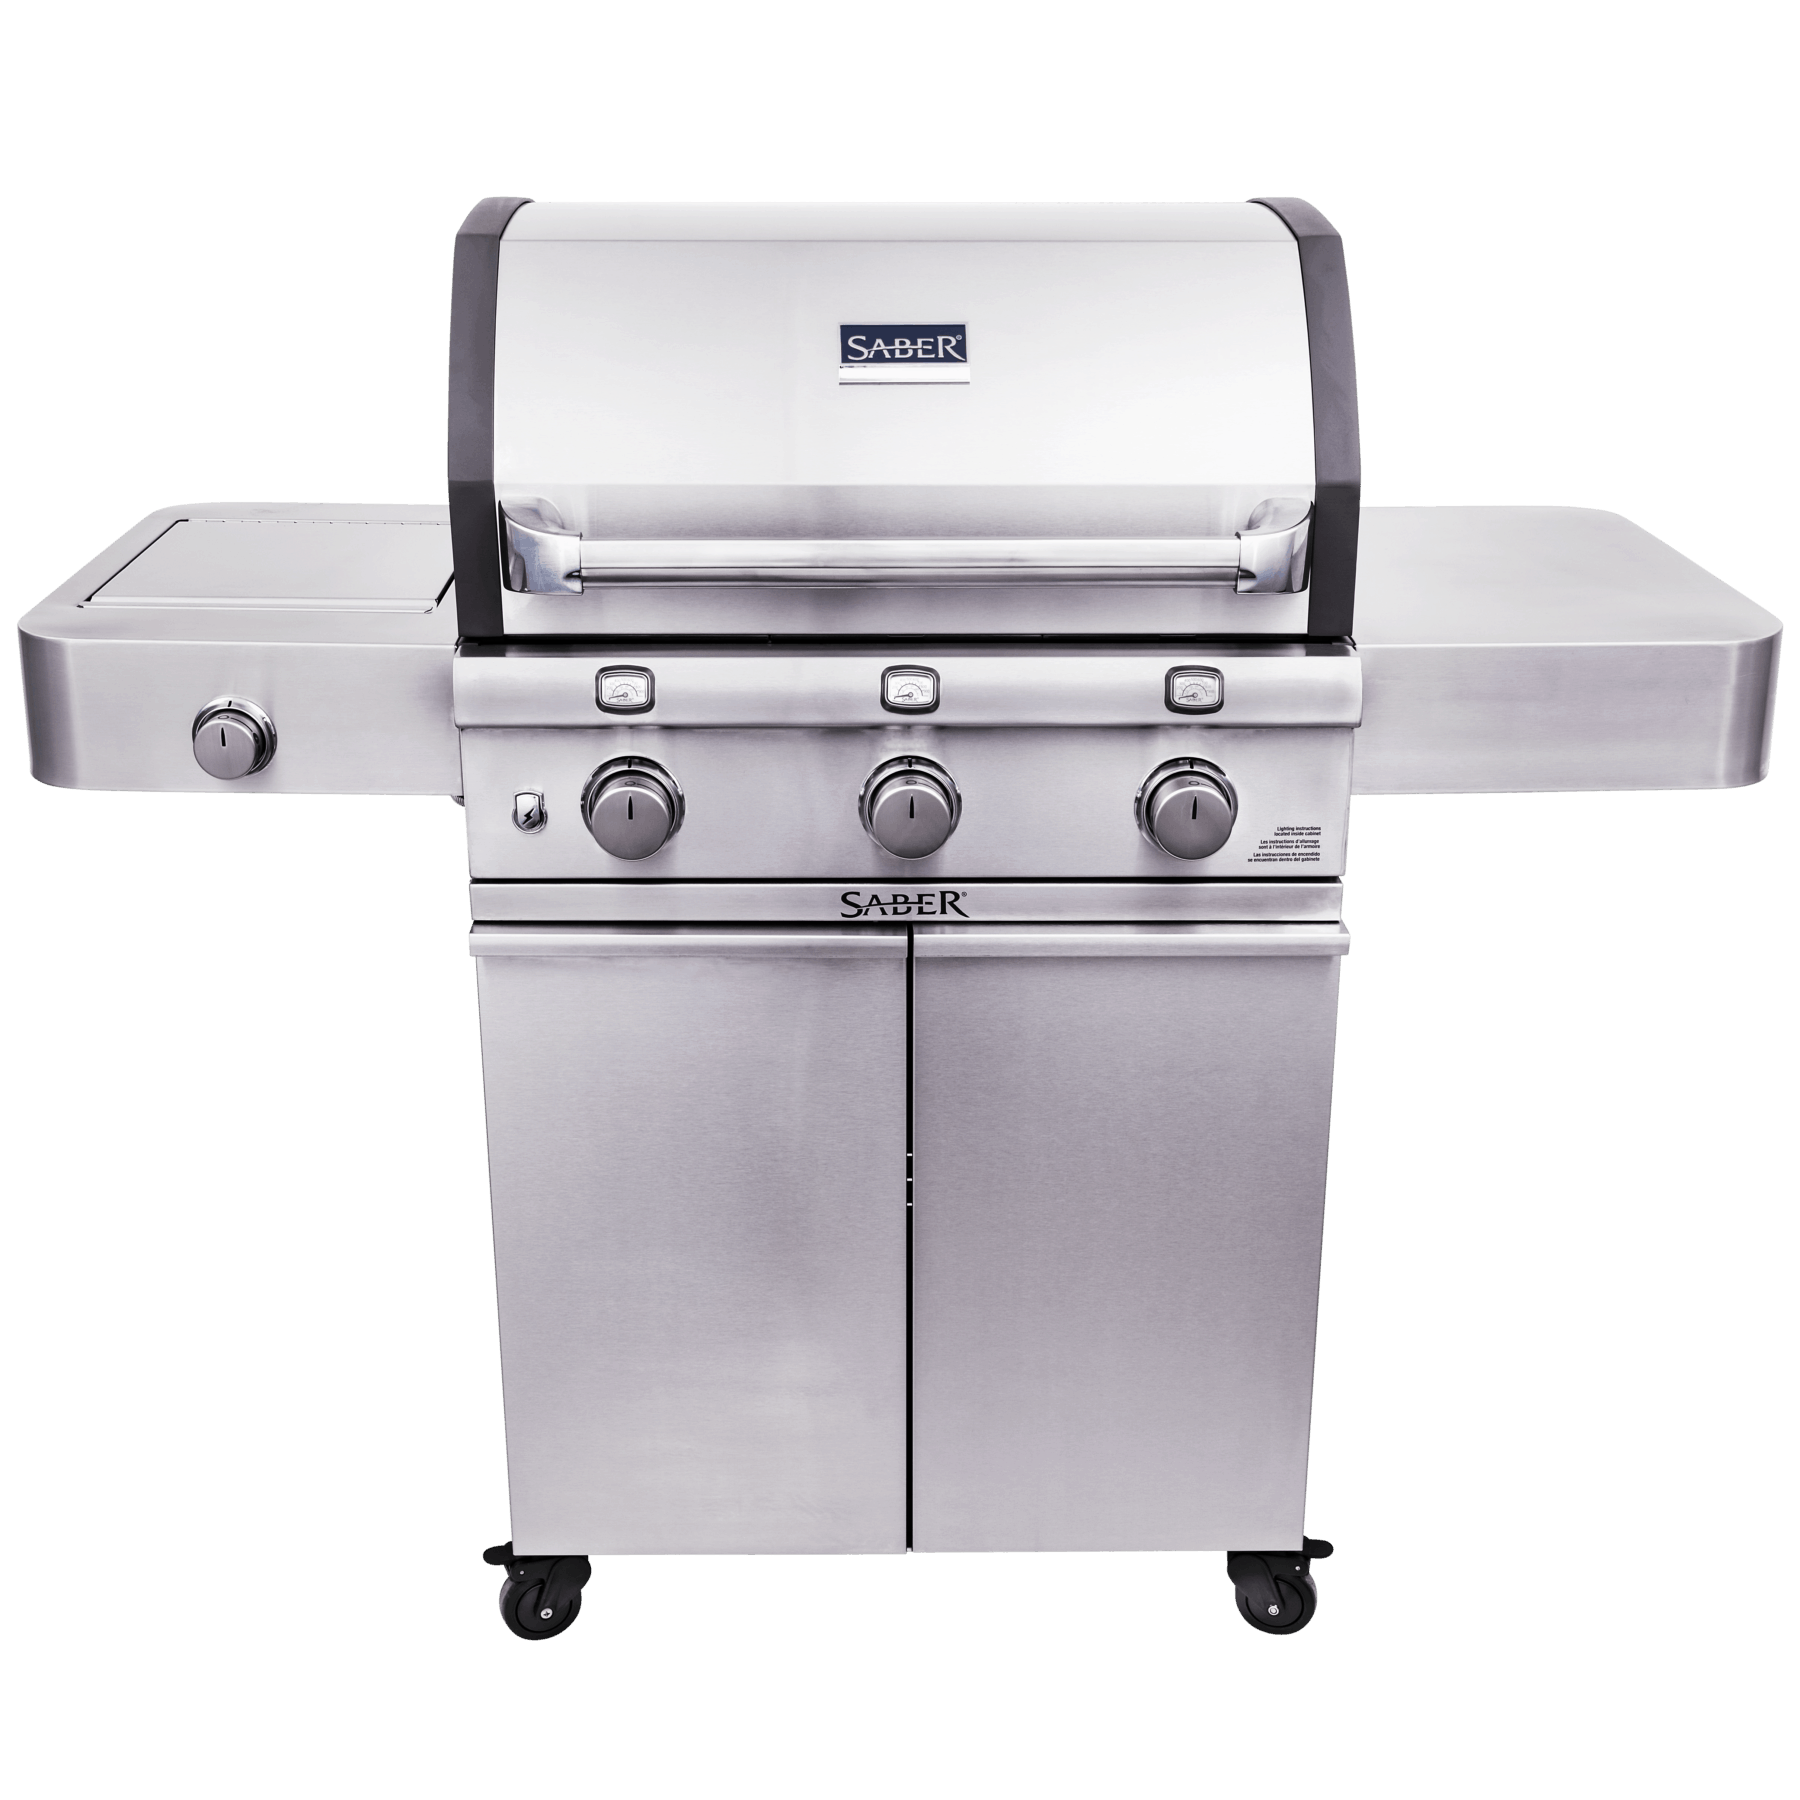 R50CC0317_SABER__Cast_Stainless_3-Burner_Gas_Grill_001